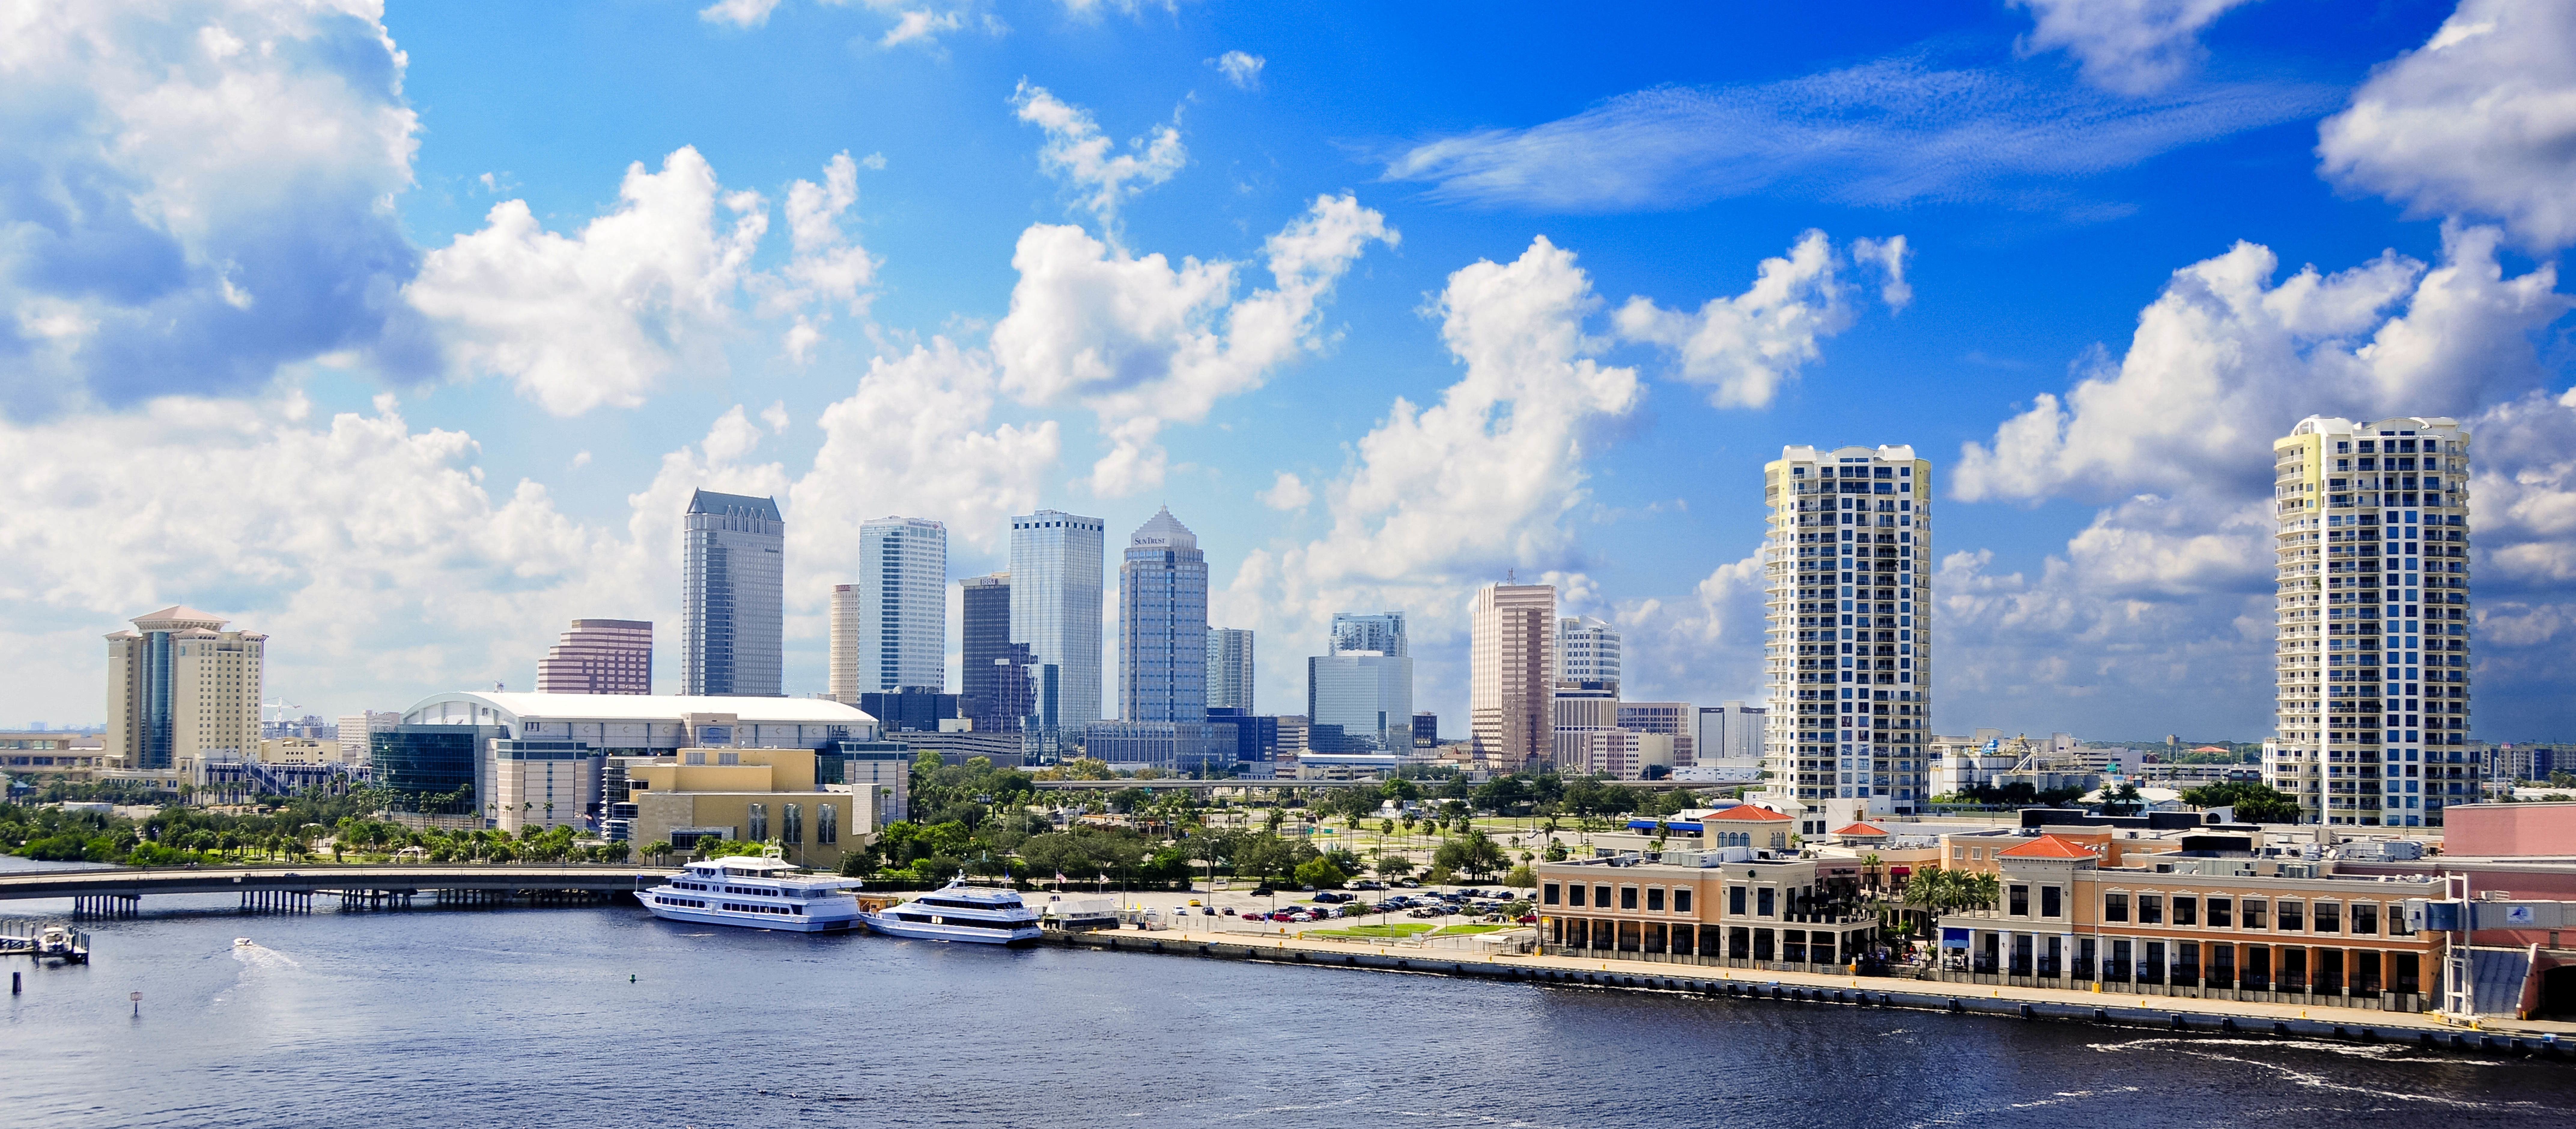 Skyline of Tampa and the Harbour